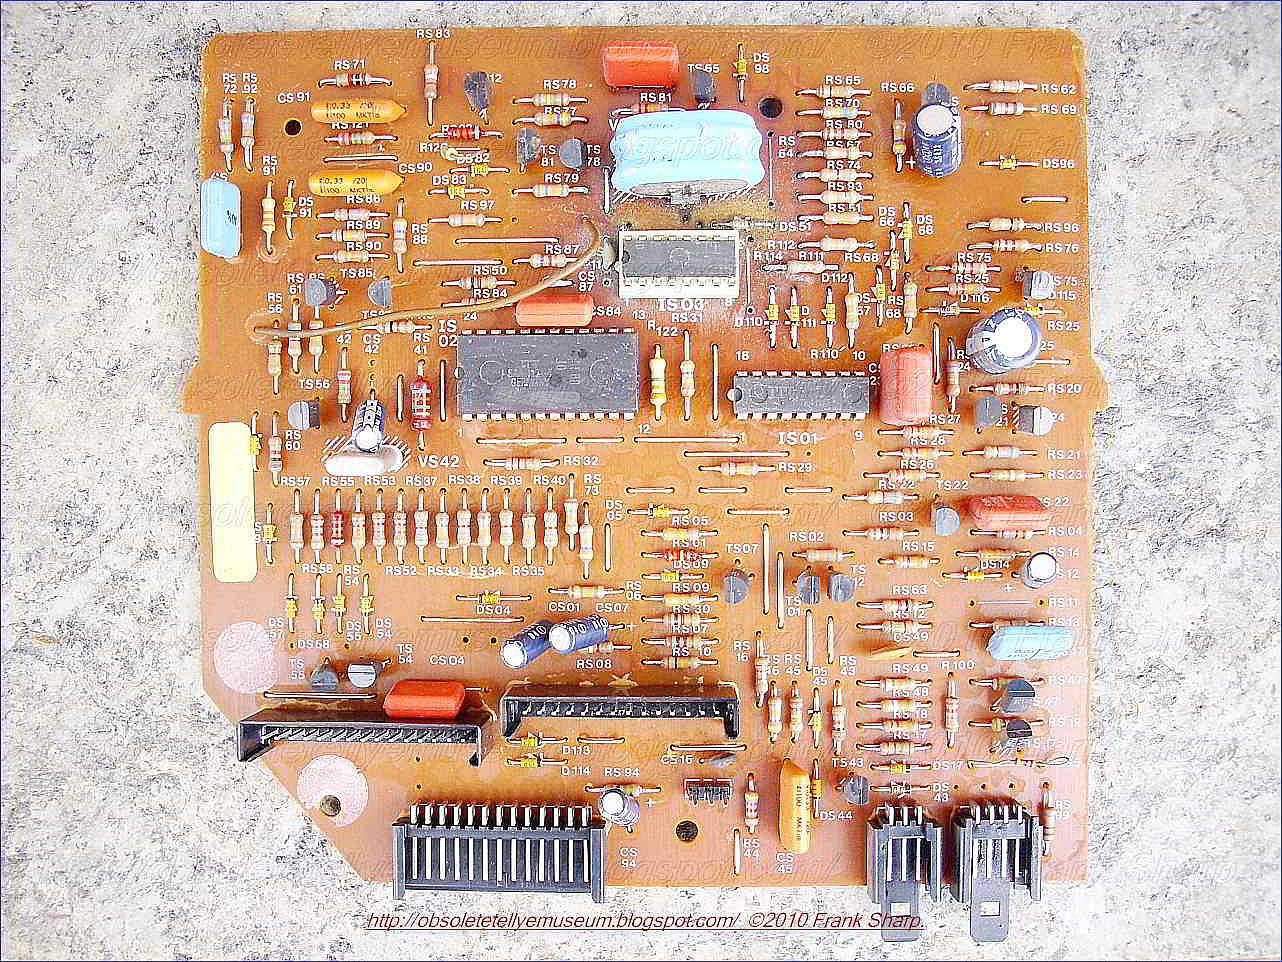 Obsolete Technology Tellye Nordmende Spectra Sk3 Color T3137 Electronic Switch Integrated Circuit Controlcircuit When A Transmitter Without Pilot Signal Is Received The Search Tuning Switches Over To Slowed Down Searching Action And Automatic